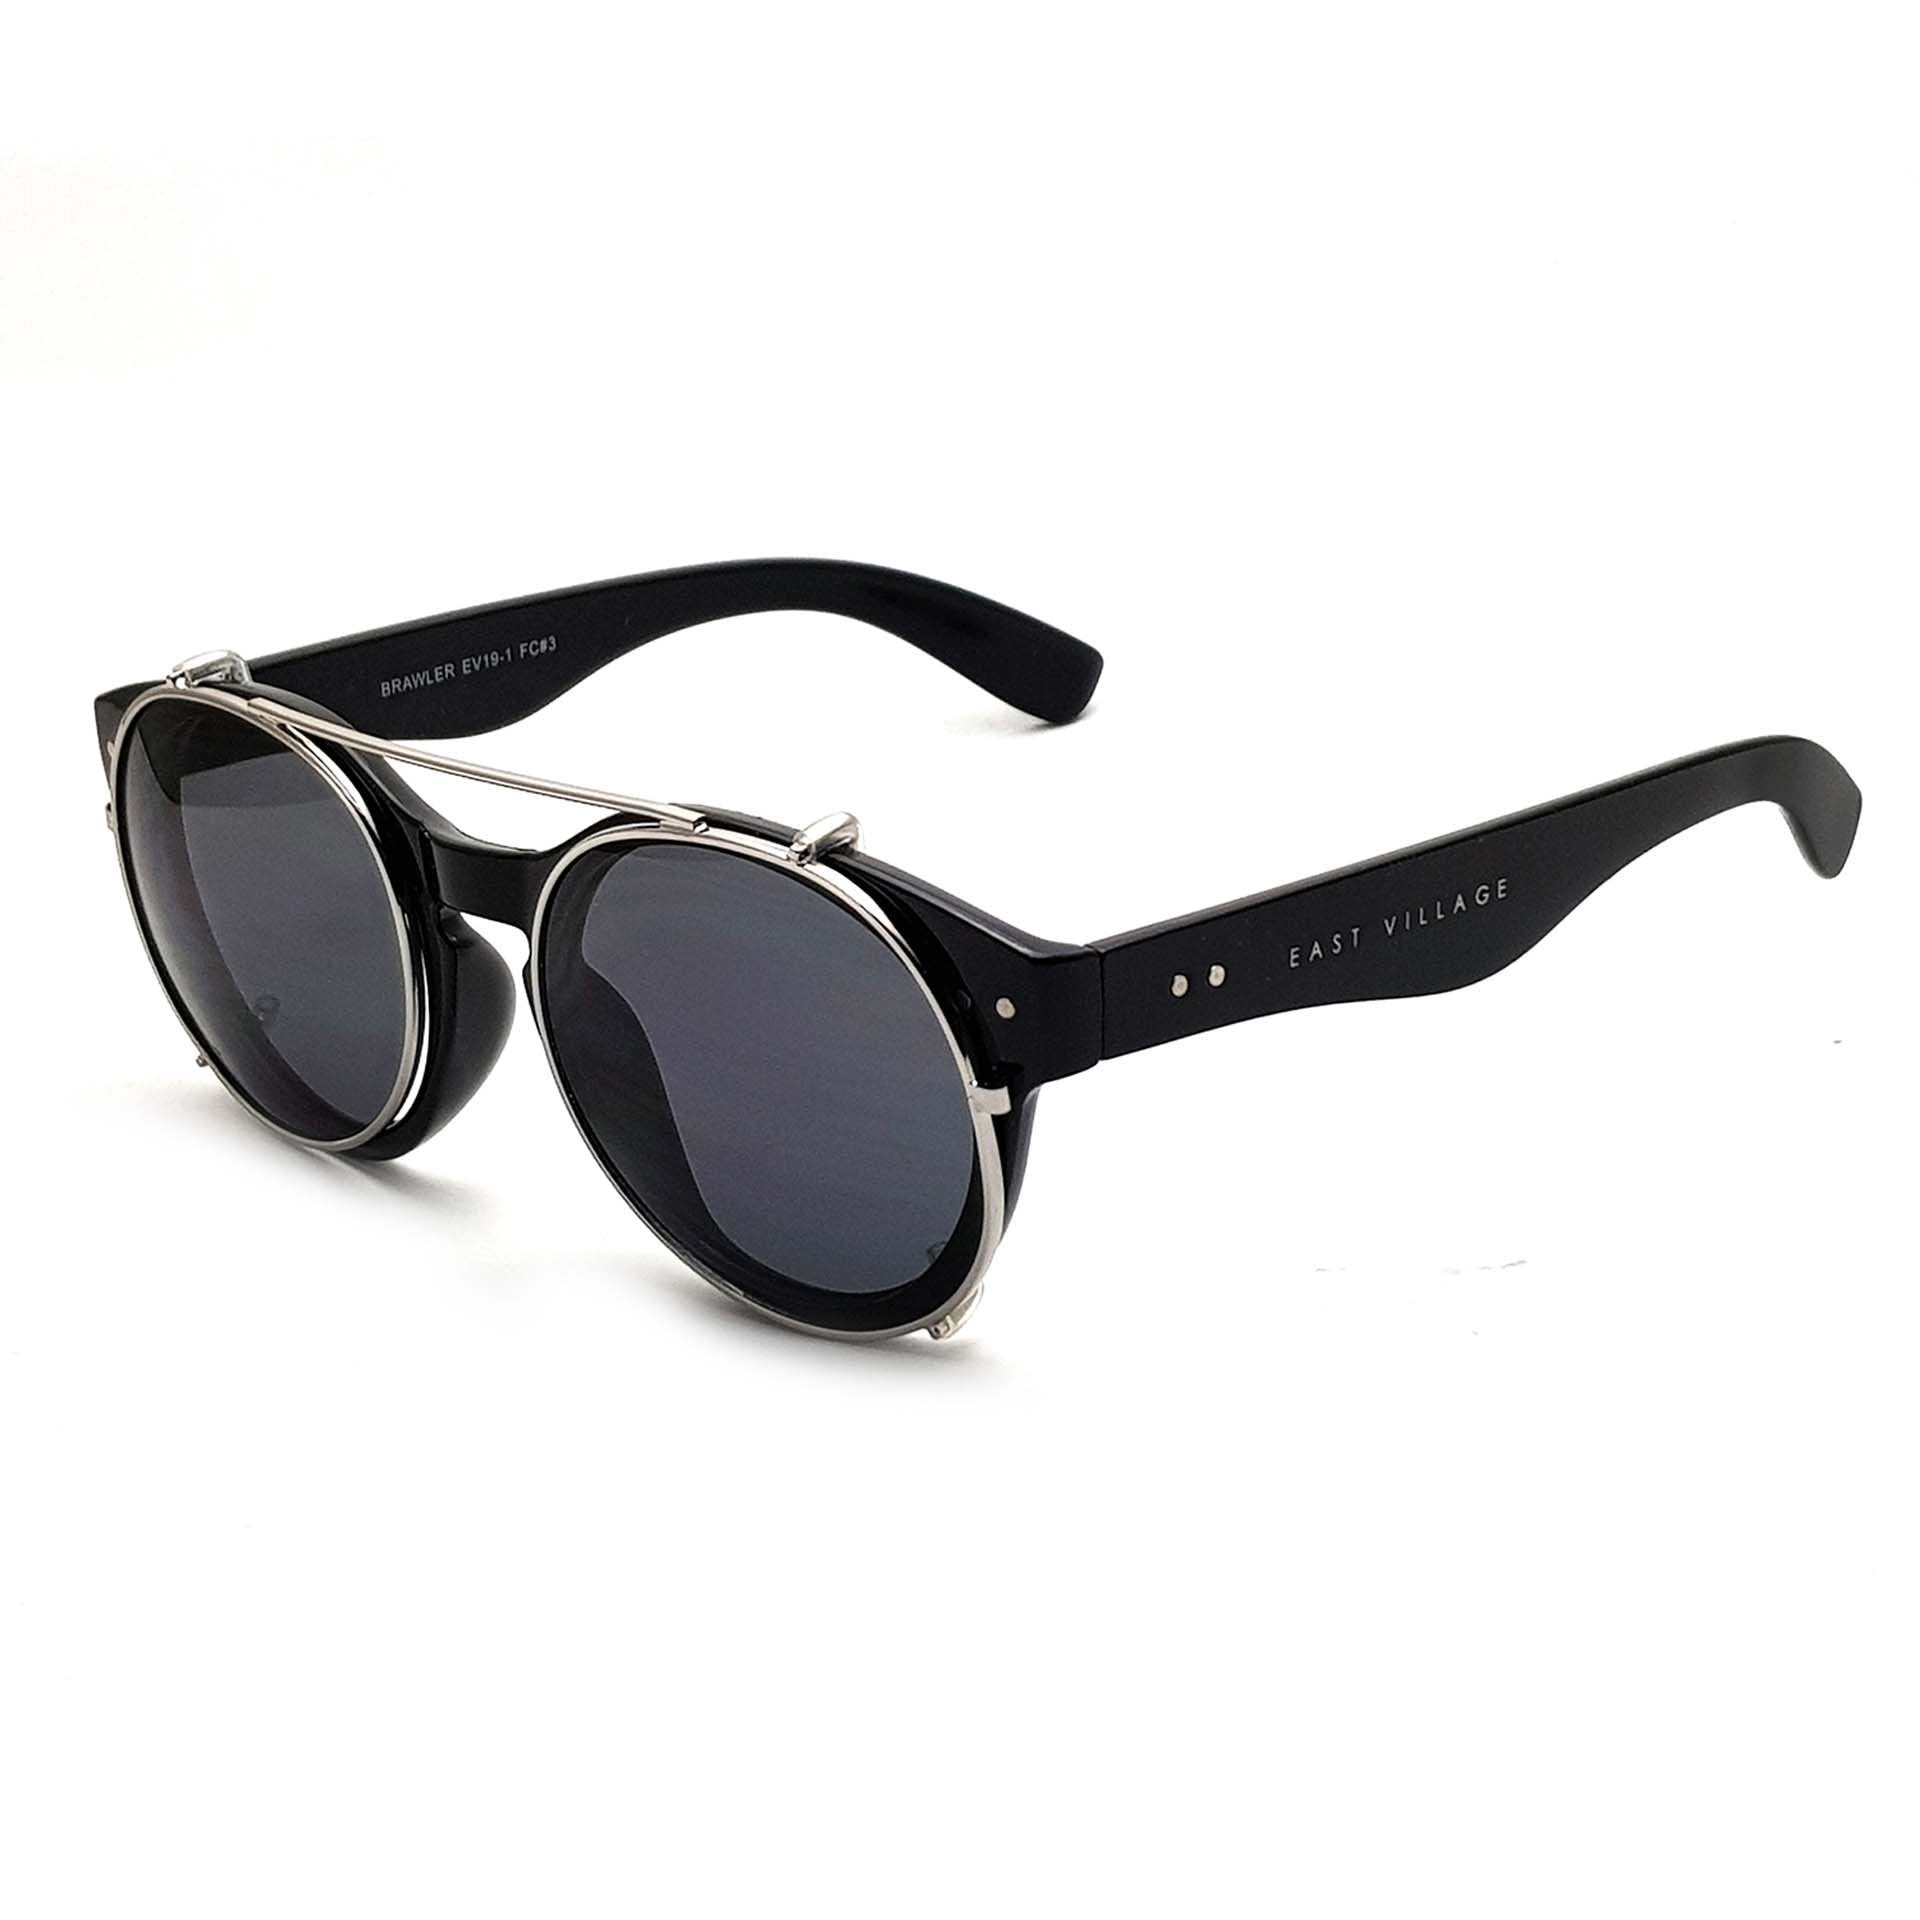 East Village Brawler Round Sunglasses Black And Metal With Solid Smoke Lens